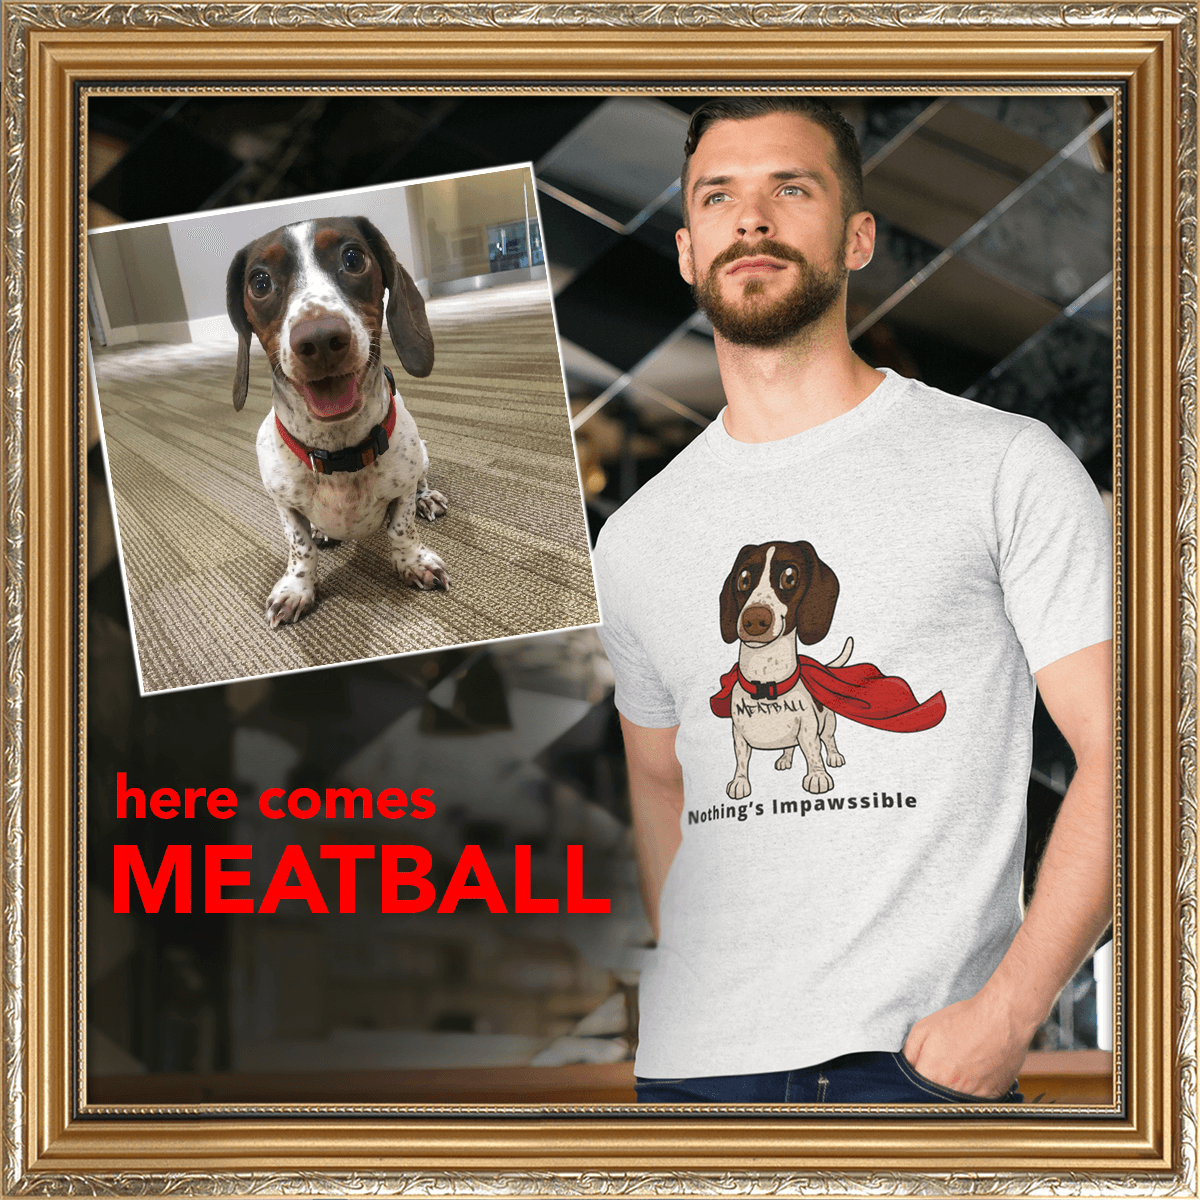 Here comes meatball tshirt